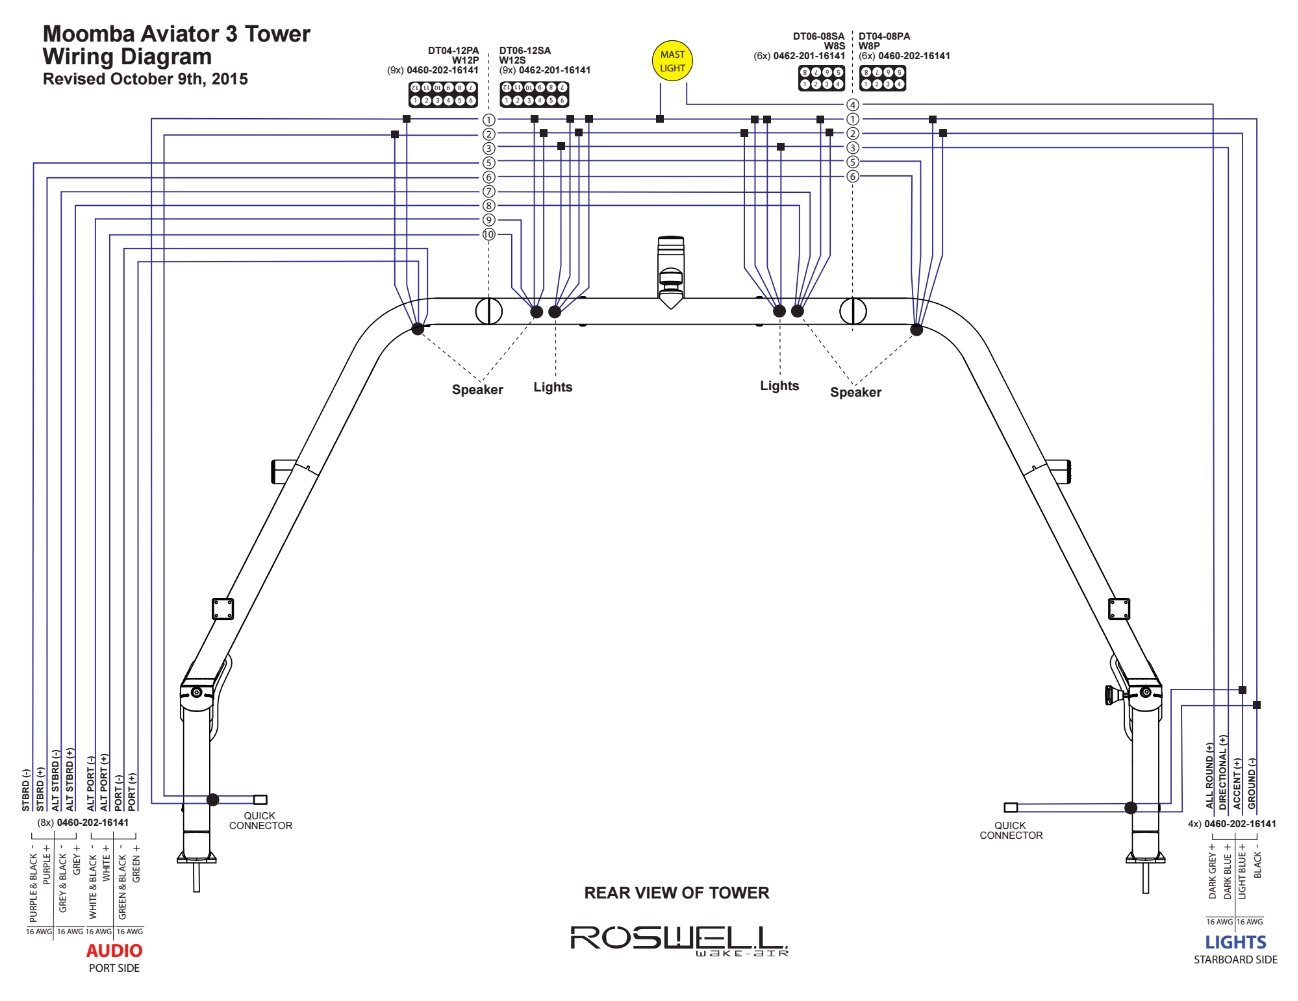 roswell wiring diagram wiring diagrams rh katagiri co Simple Wiring Diagrams Light Switch Wiring Diagram